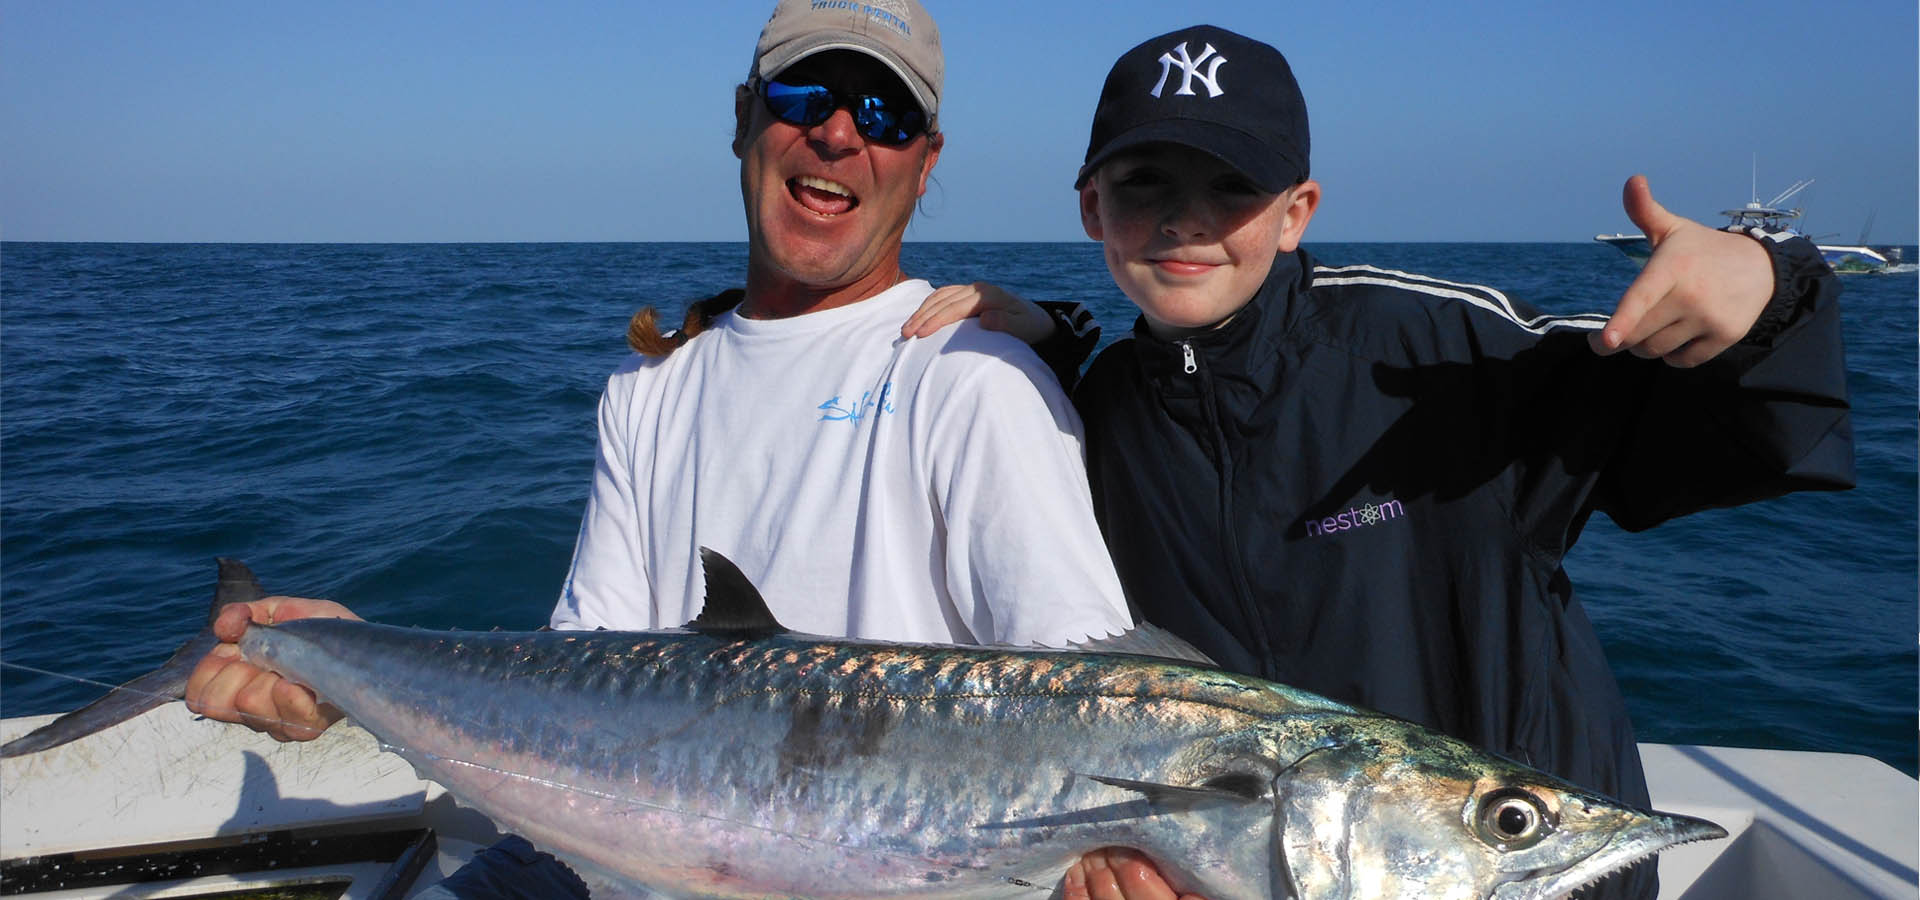 Capt. Dan Barry and young boy with Kingfish.